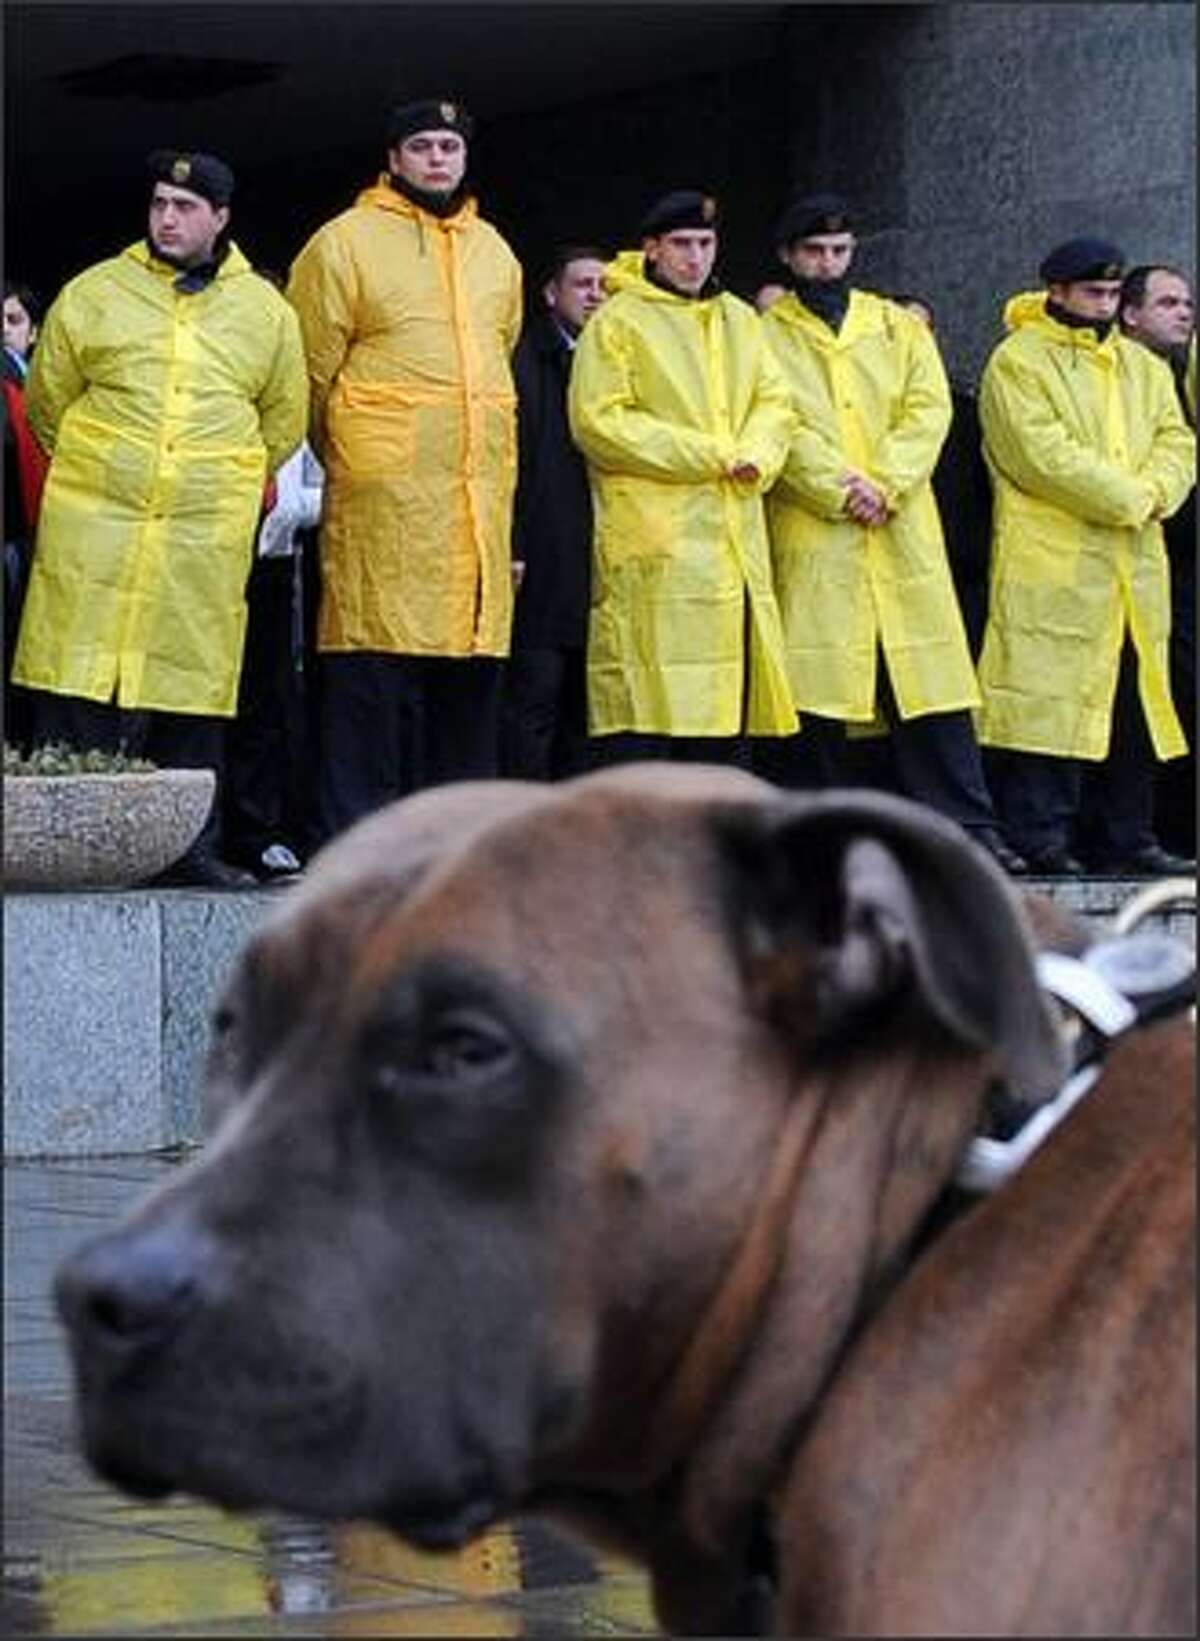 A dog is seen near policemen during a rally in front of the presidential residence in Tbilisi. Opposition demonstrations calling for President Mikheil Saakashvili to resign entered their seventh day Wednesday as the number of protesters taking part dwindled.